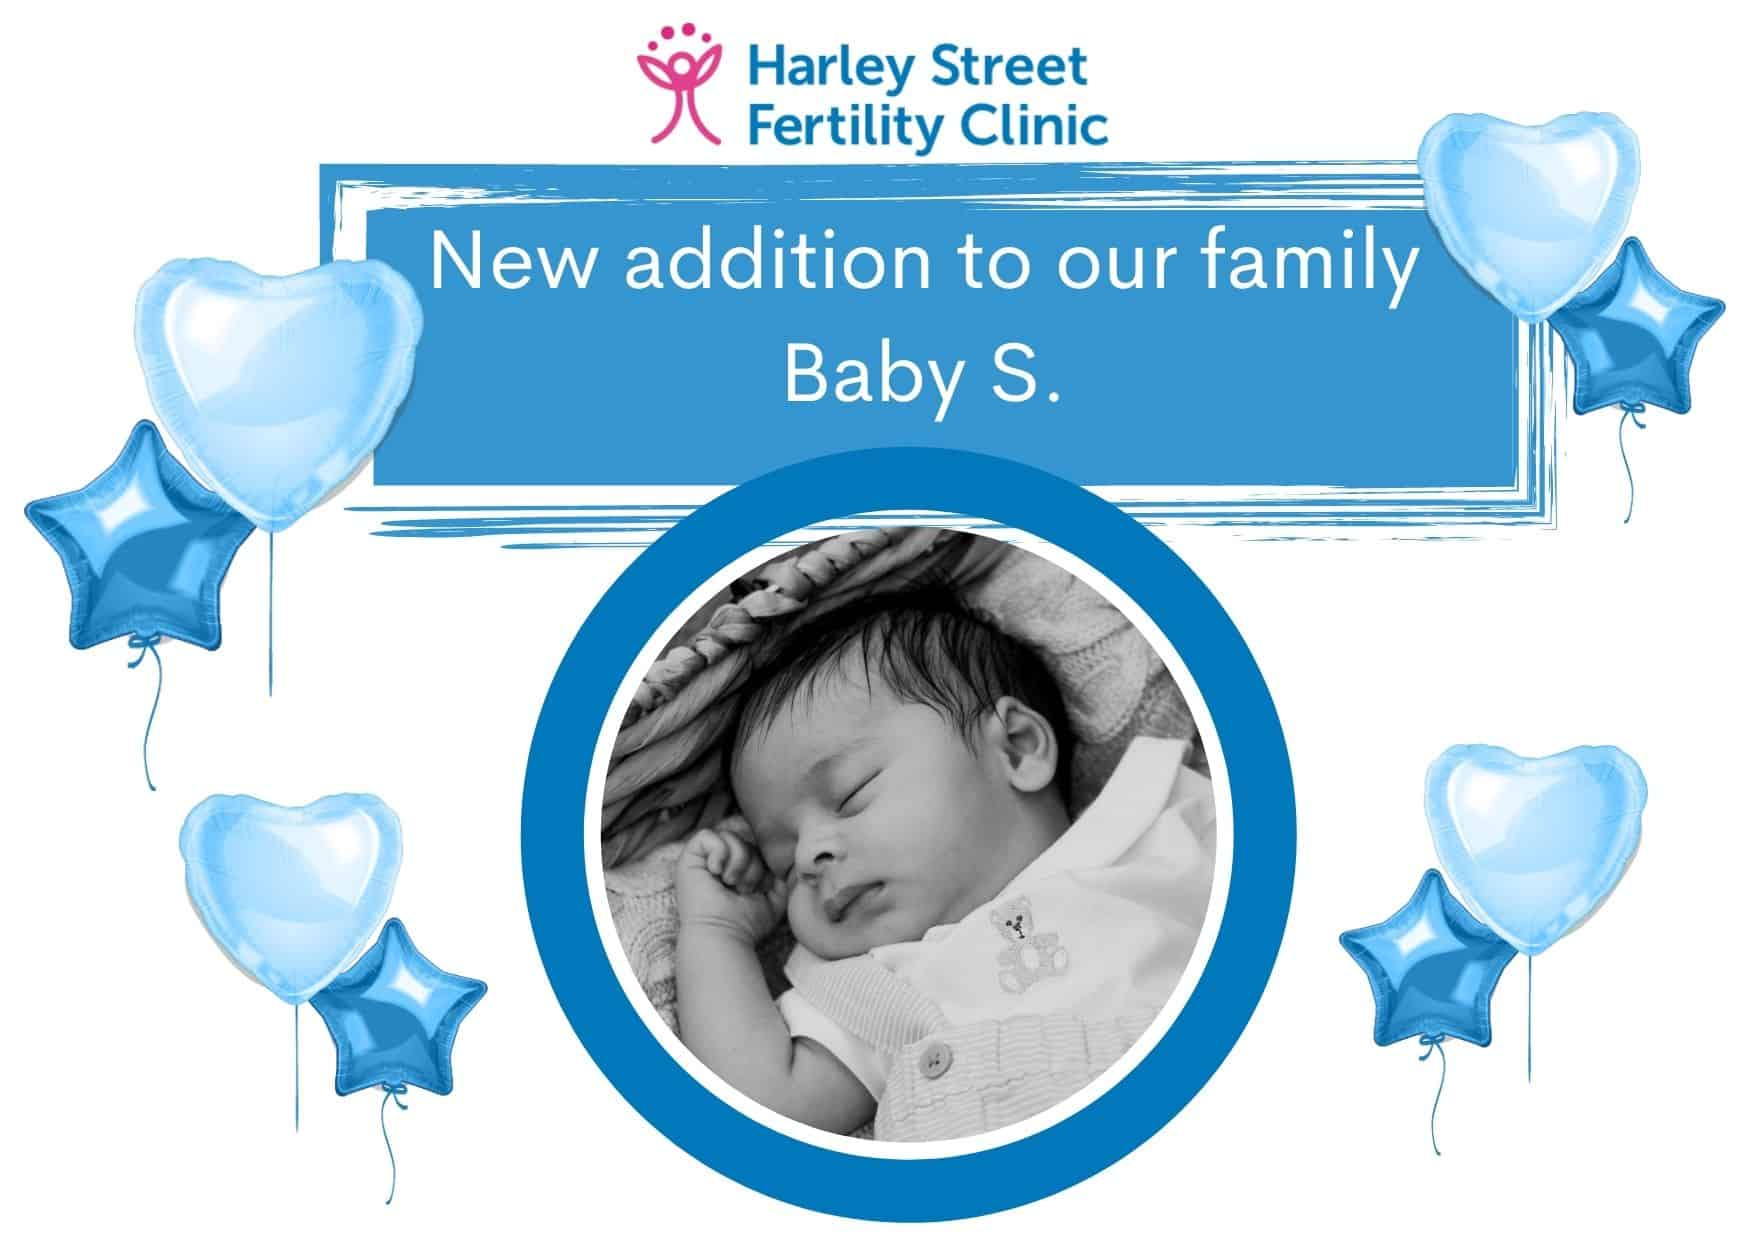 A new addition to our family: baby S.